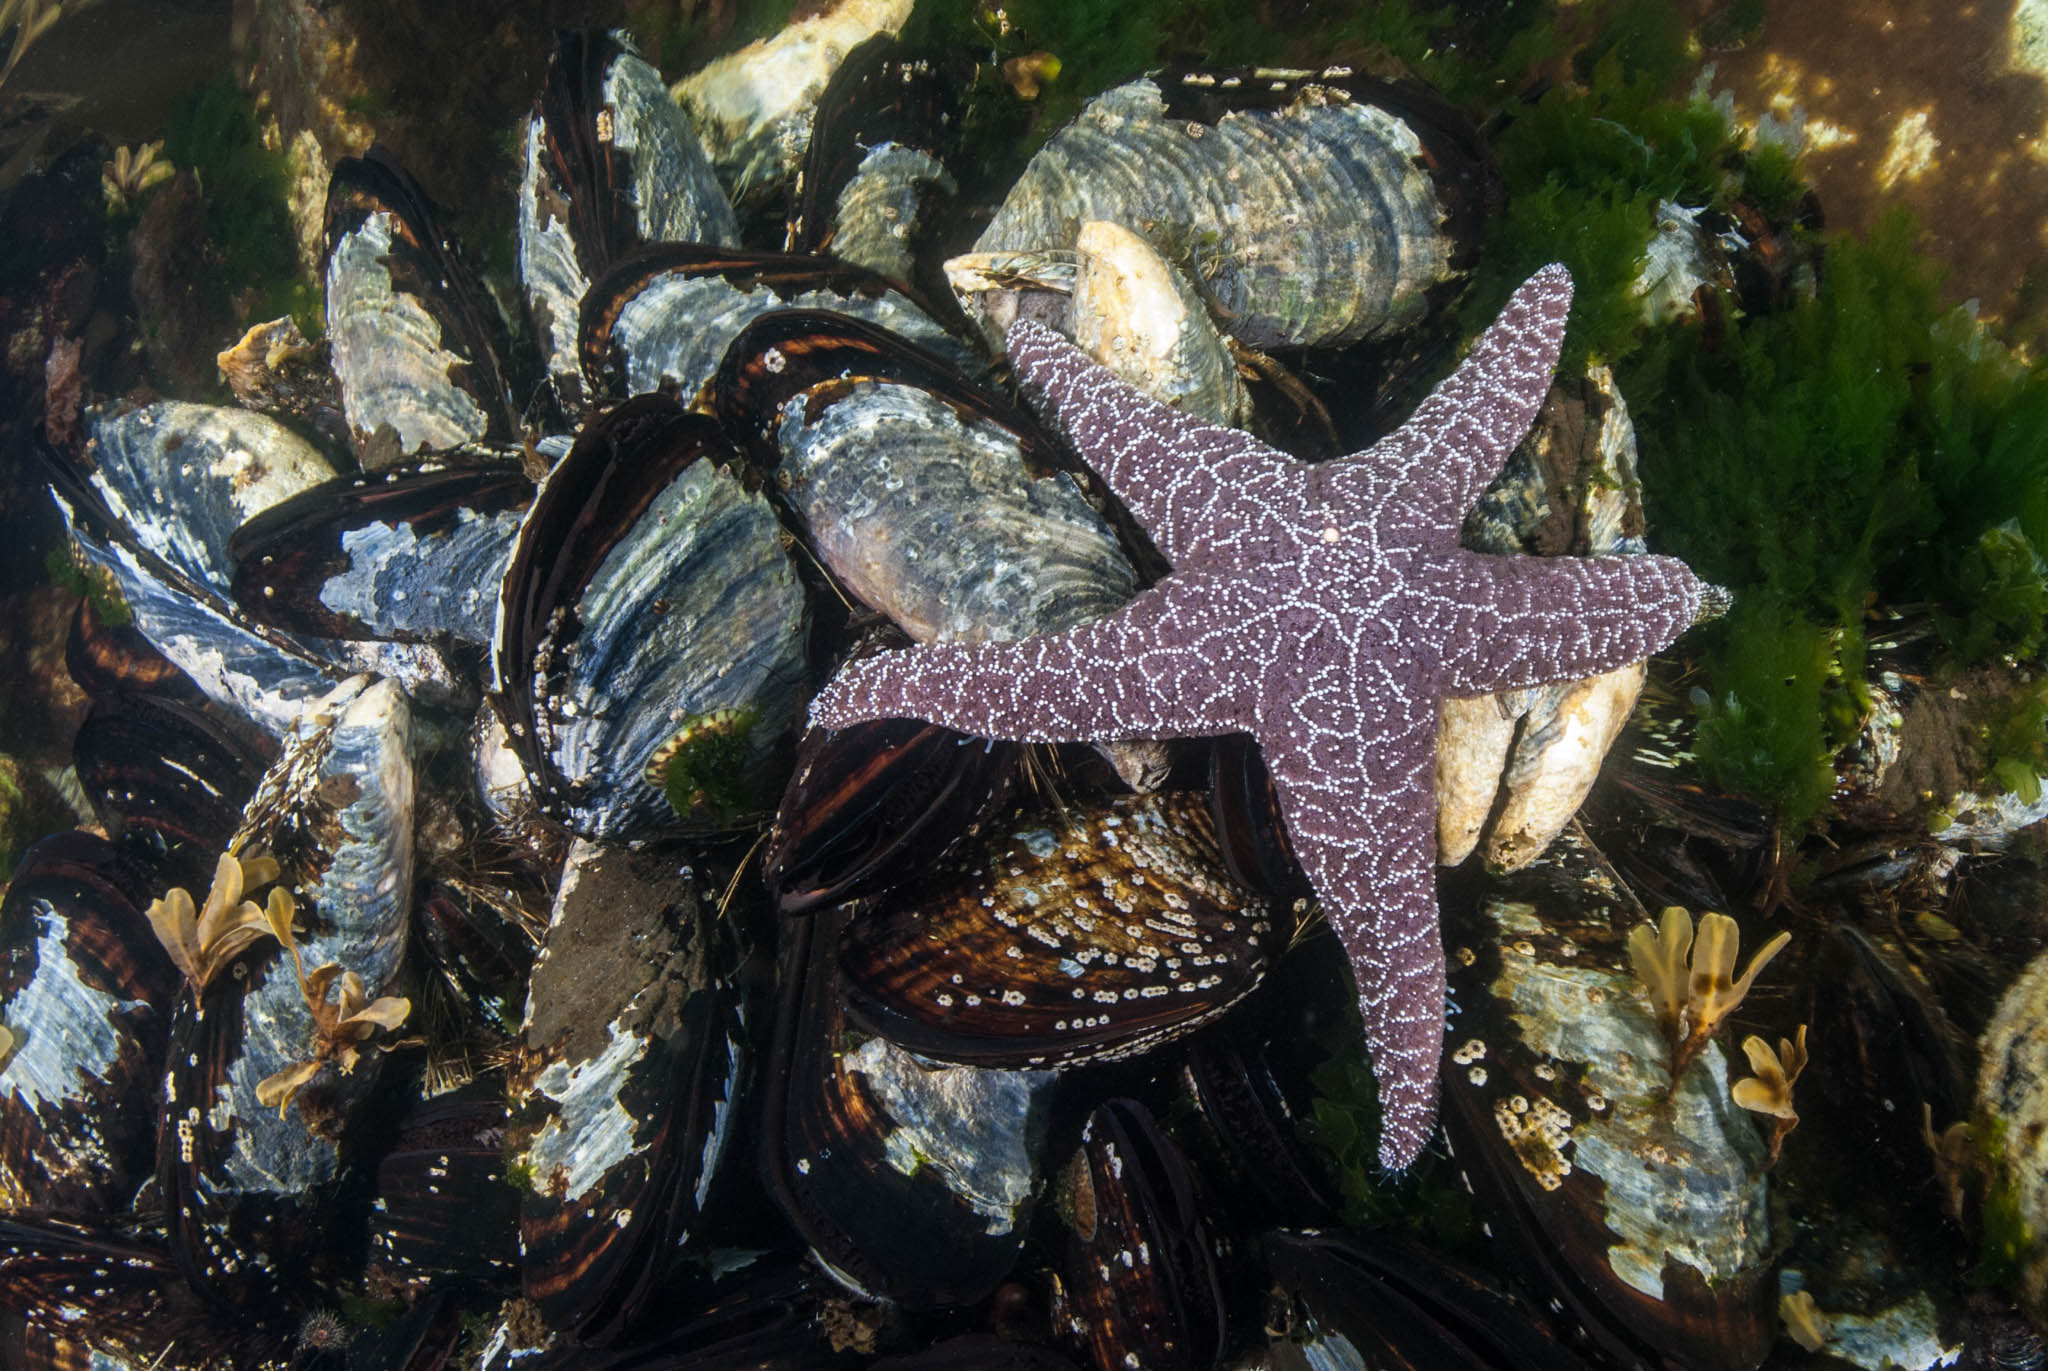 Seastar and Mussels